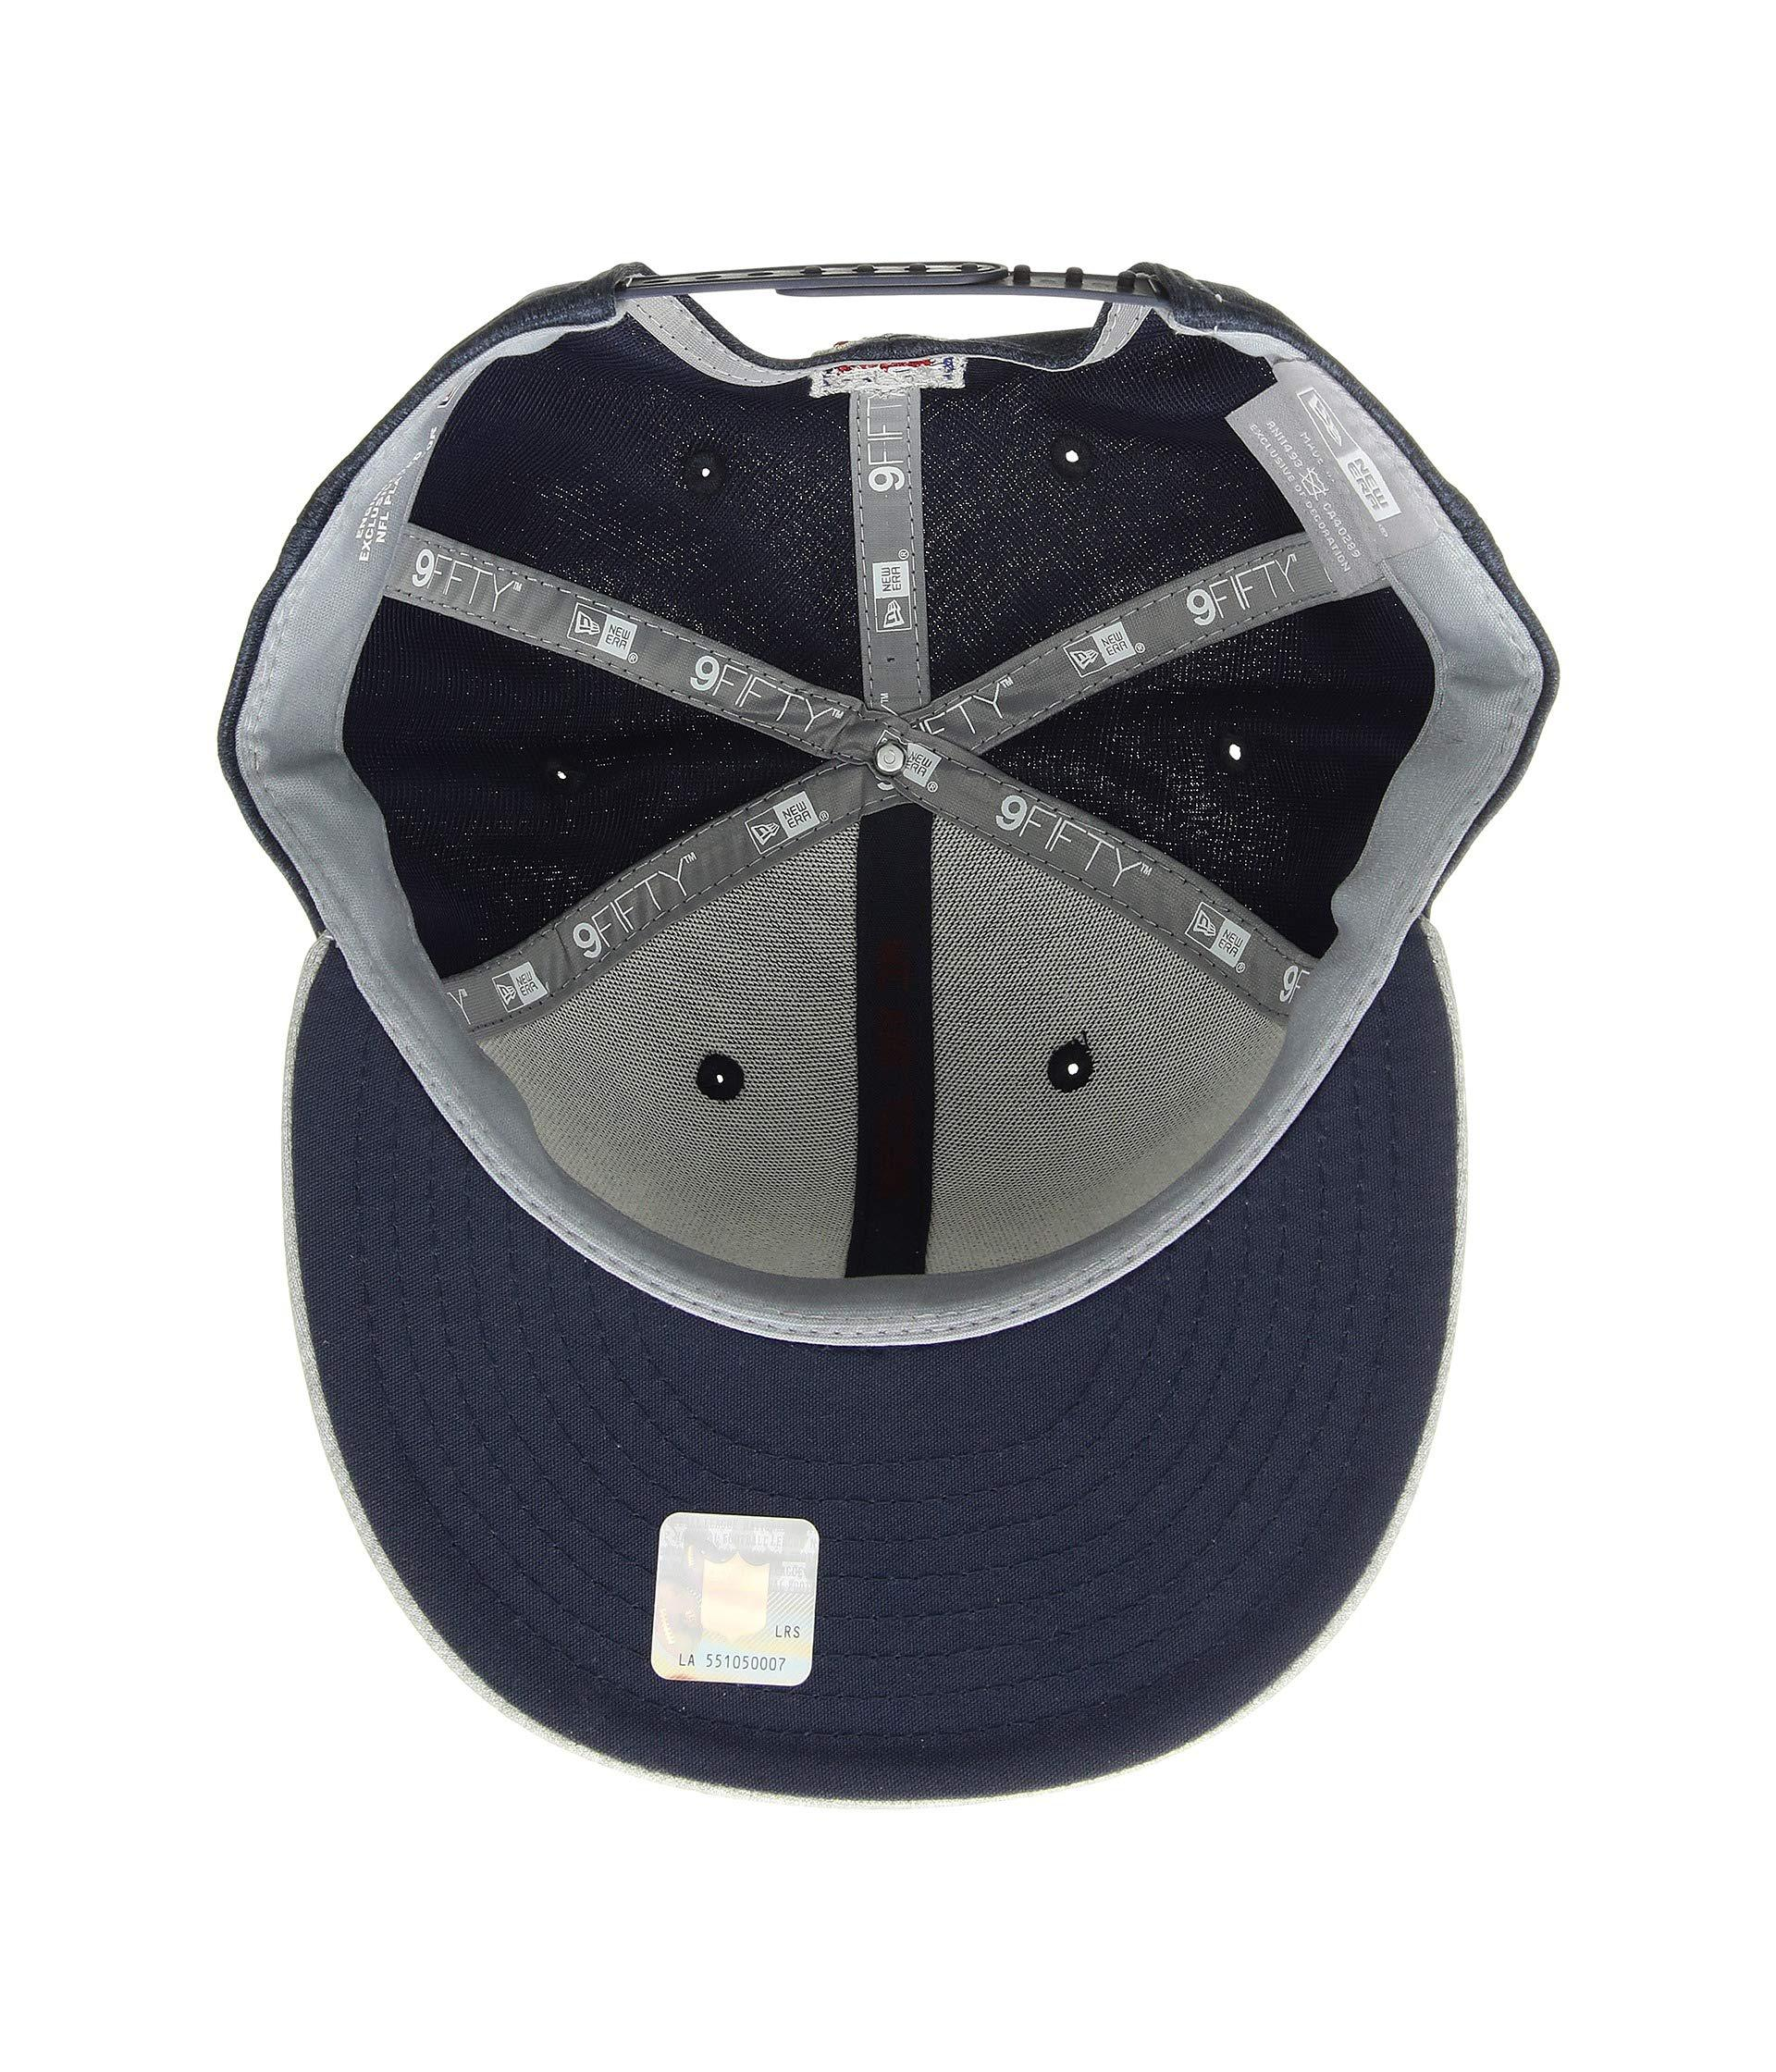 Lyst - Ktz 9fifty Official Sideline Away Snapback - Houston Texans  (grey blue) Caps in Blue for Men 652f47d93061